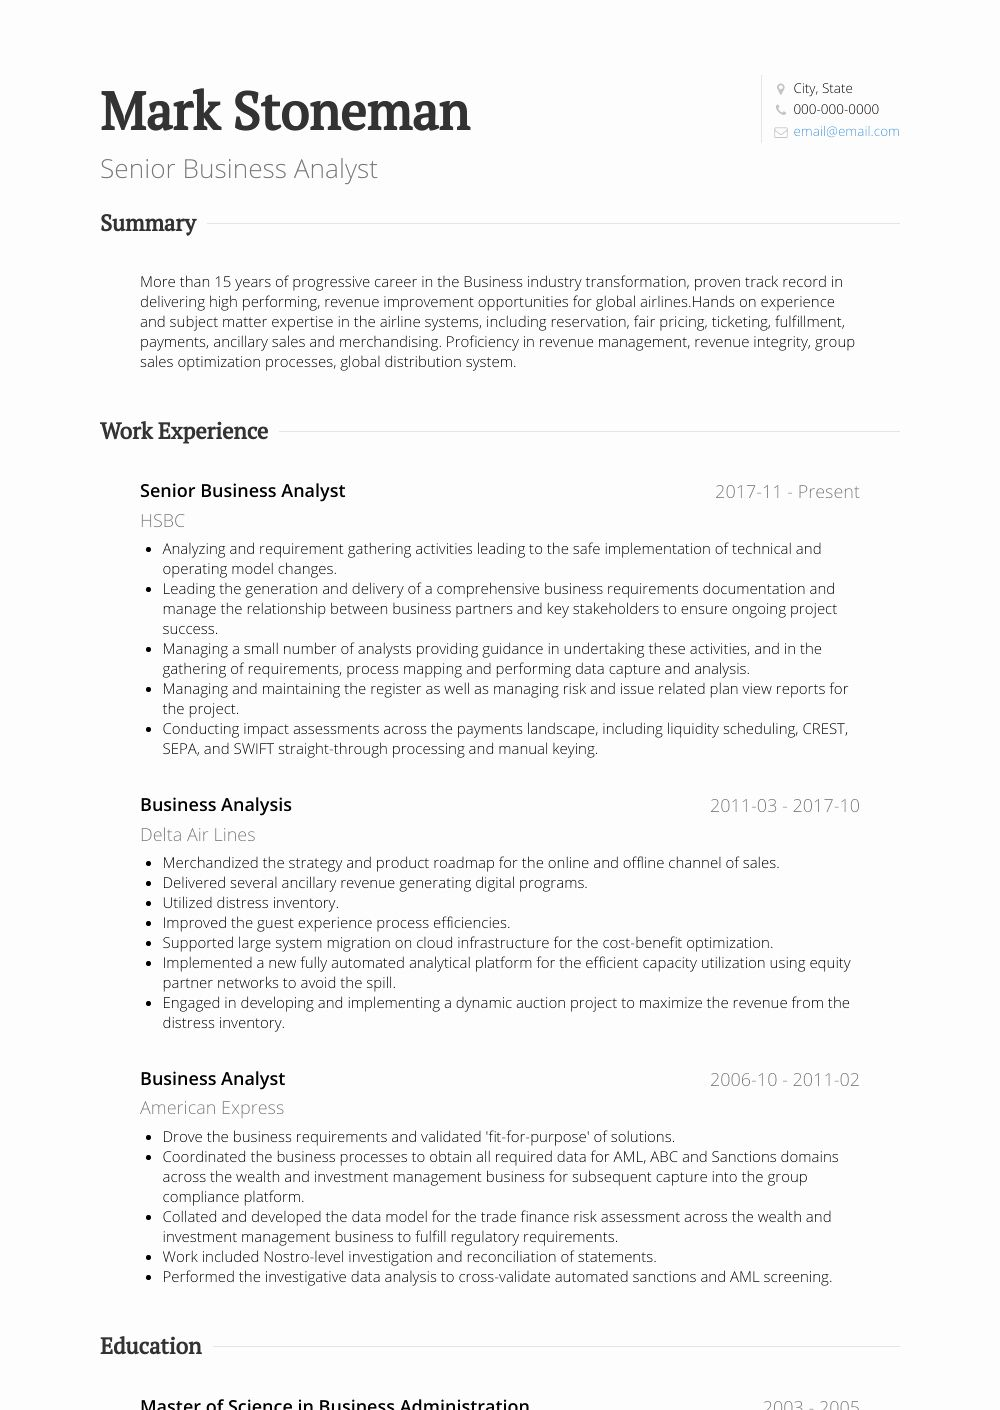 business analyst resume example inspirational senior objective should have summary front Resume Senior Business Analyst Resume Objective